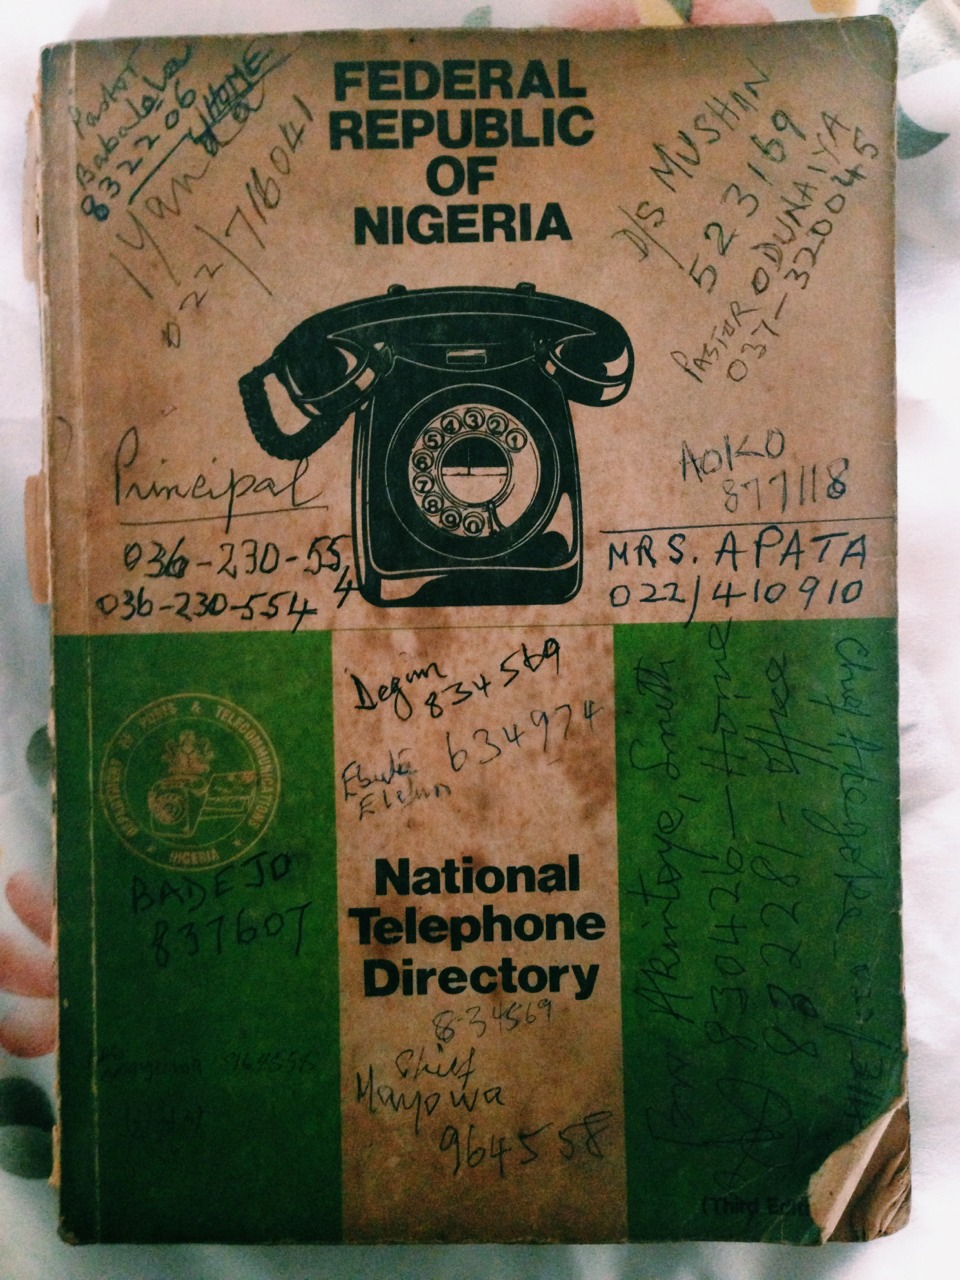 thecreativeafrican: Found this at my Grandparent's house.